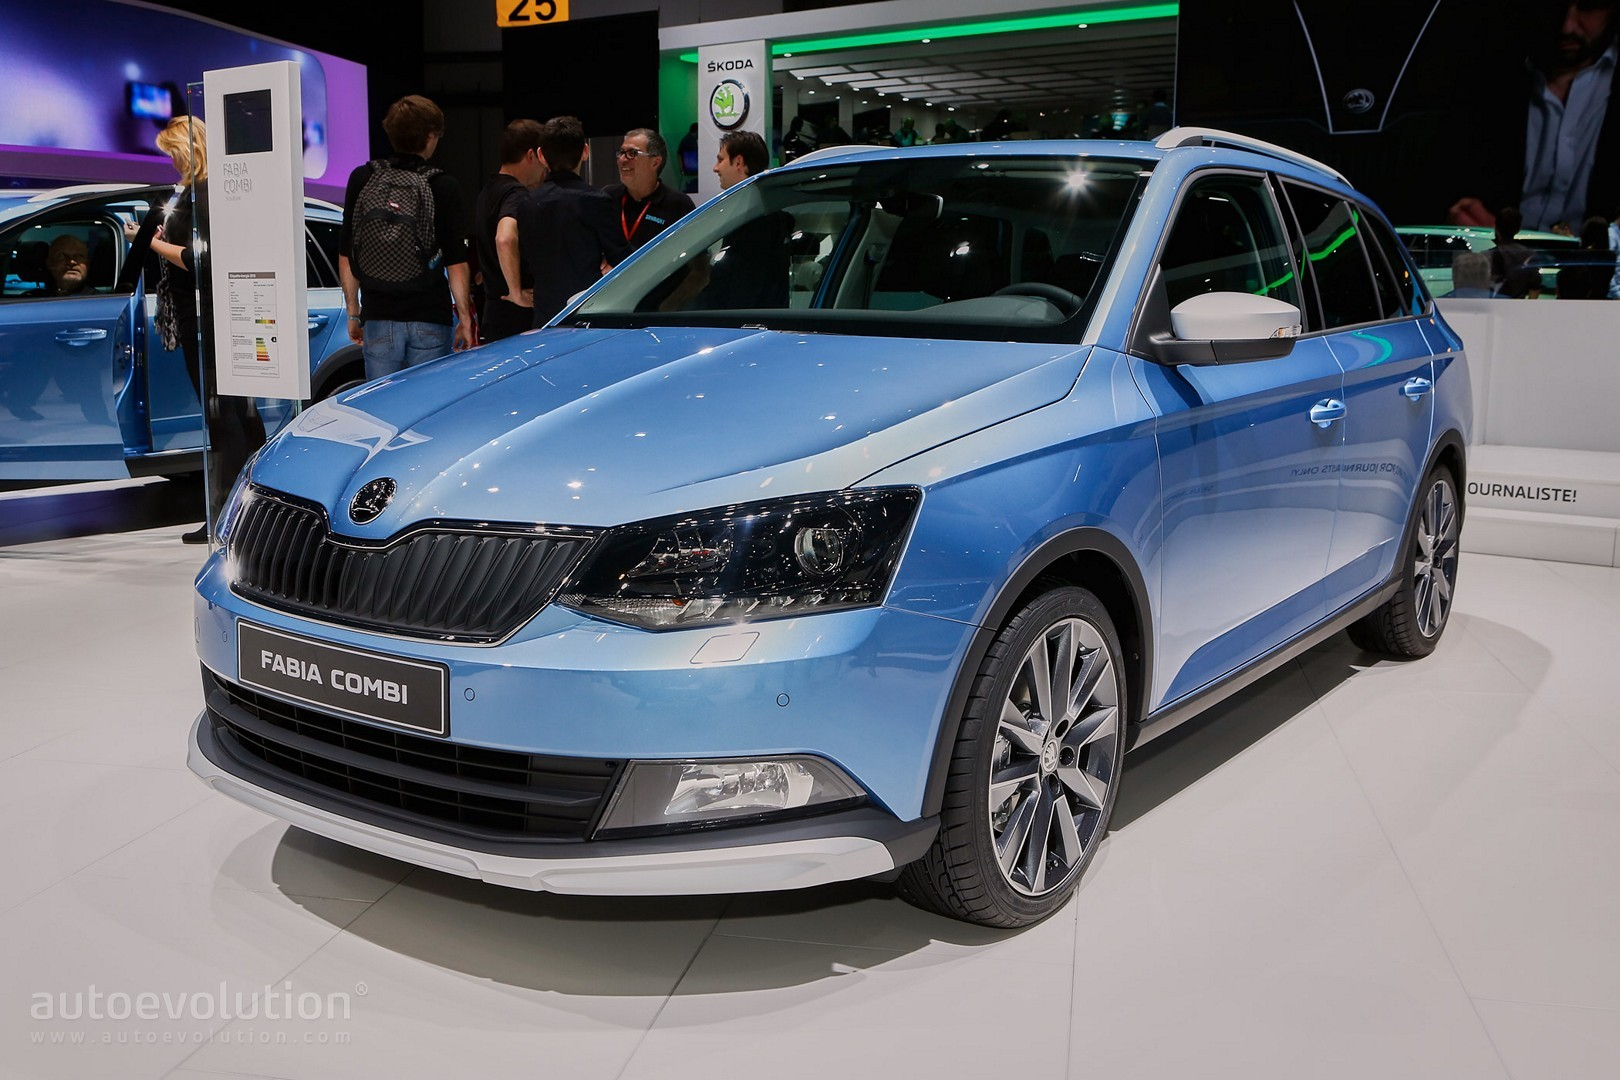 skoda fabia combi scoutline debuts in geneva looks like a baby octavia autoevolution. Black Bedroom Furniture Sets. Home Design Ideas